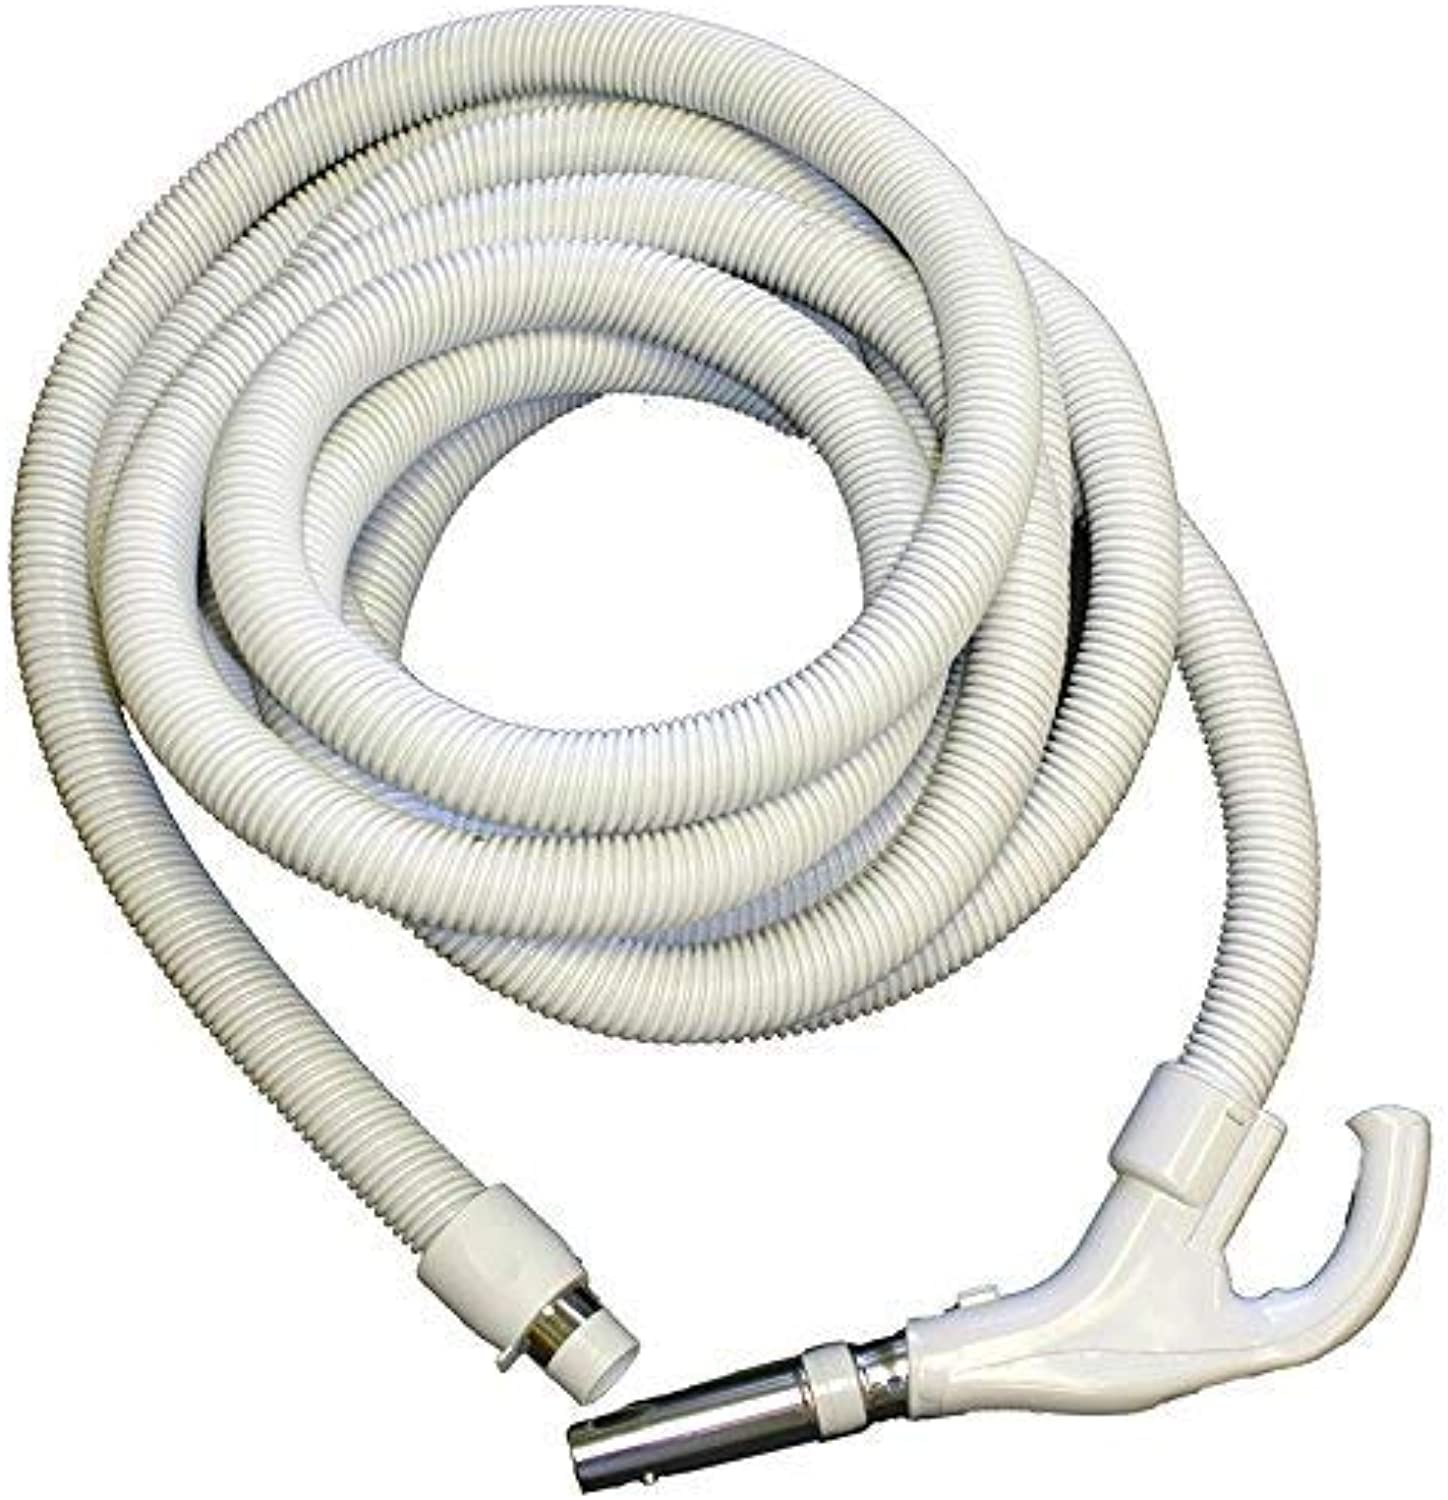 35ft Low Voltage On Off Hose with Button Lock